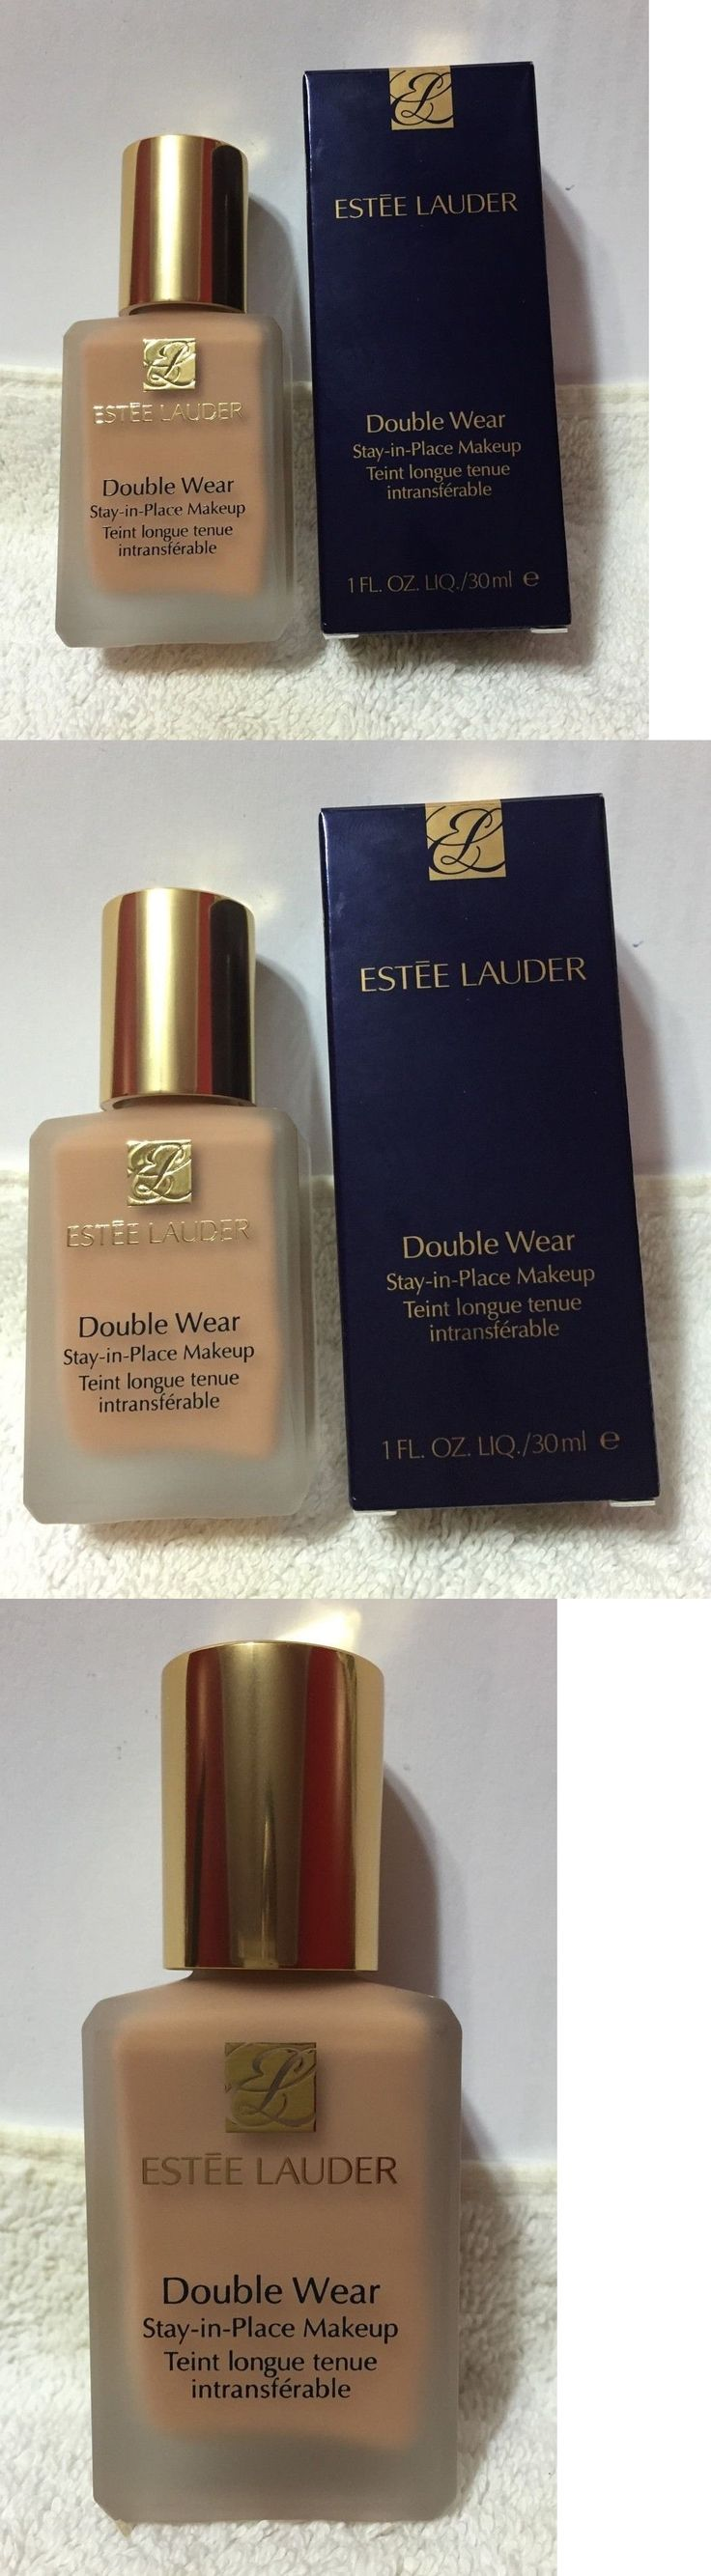 Concealer: New In Box - Estee Lauder Double Wear Makeup - 6W1 Sandalwood - Full Size - 1 Oz -> BUY IT NOW ONLY: $34.95 on eBay!